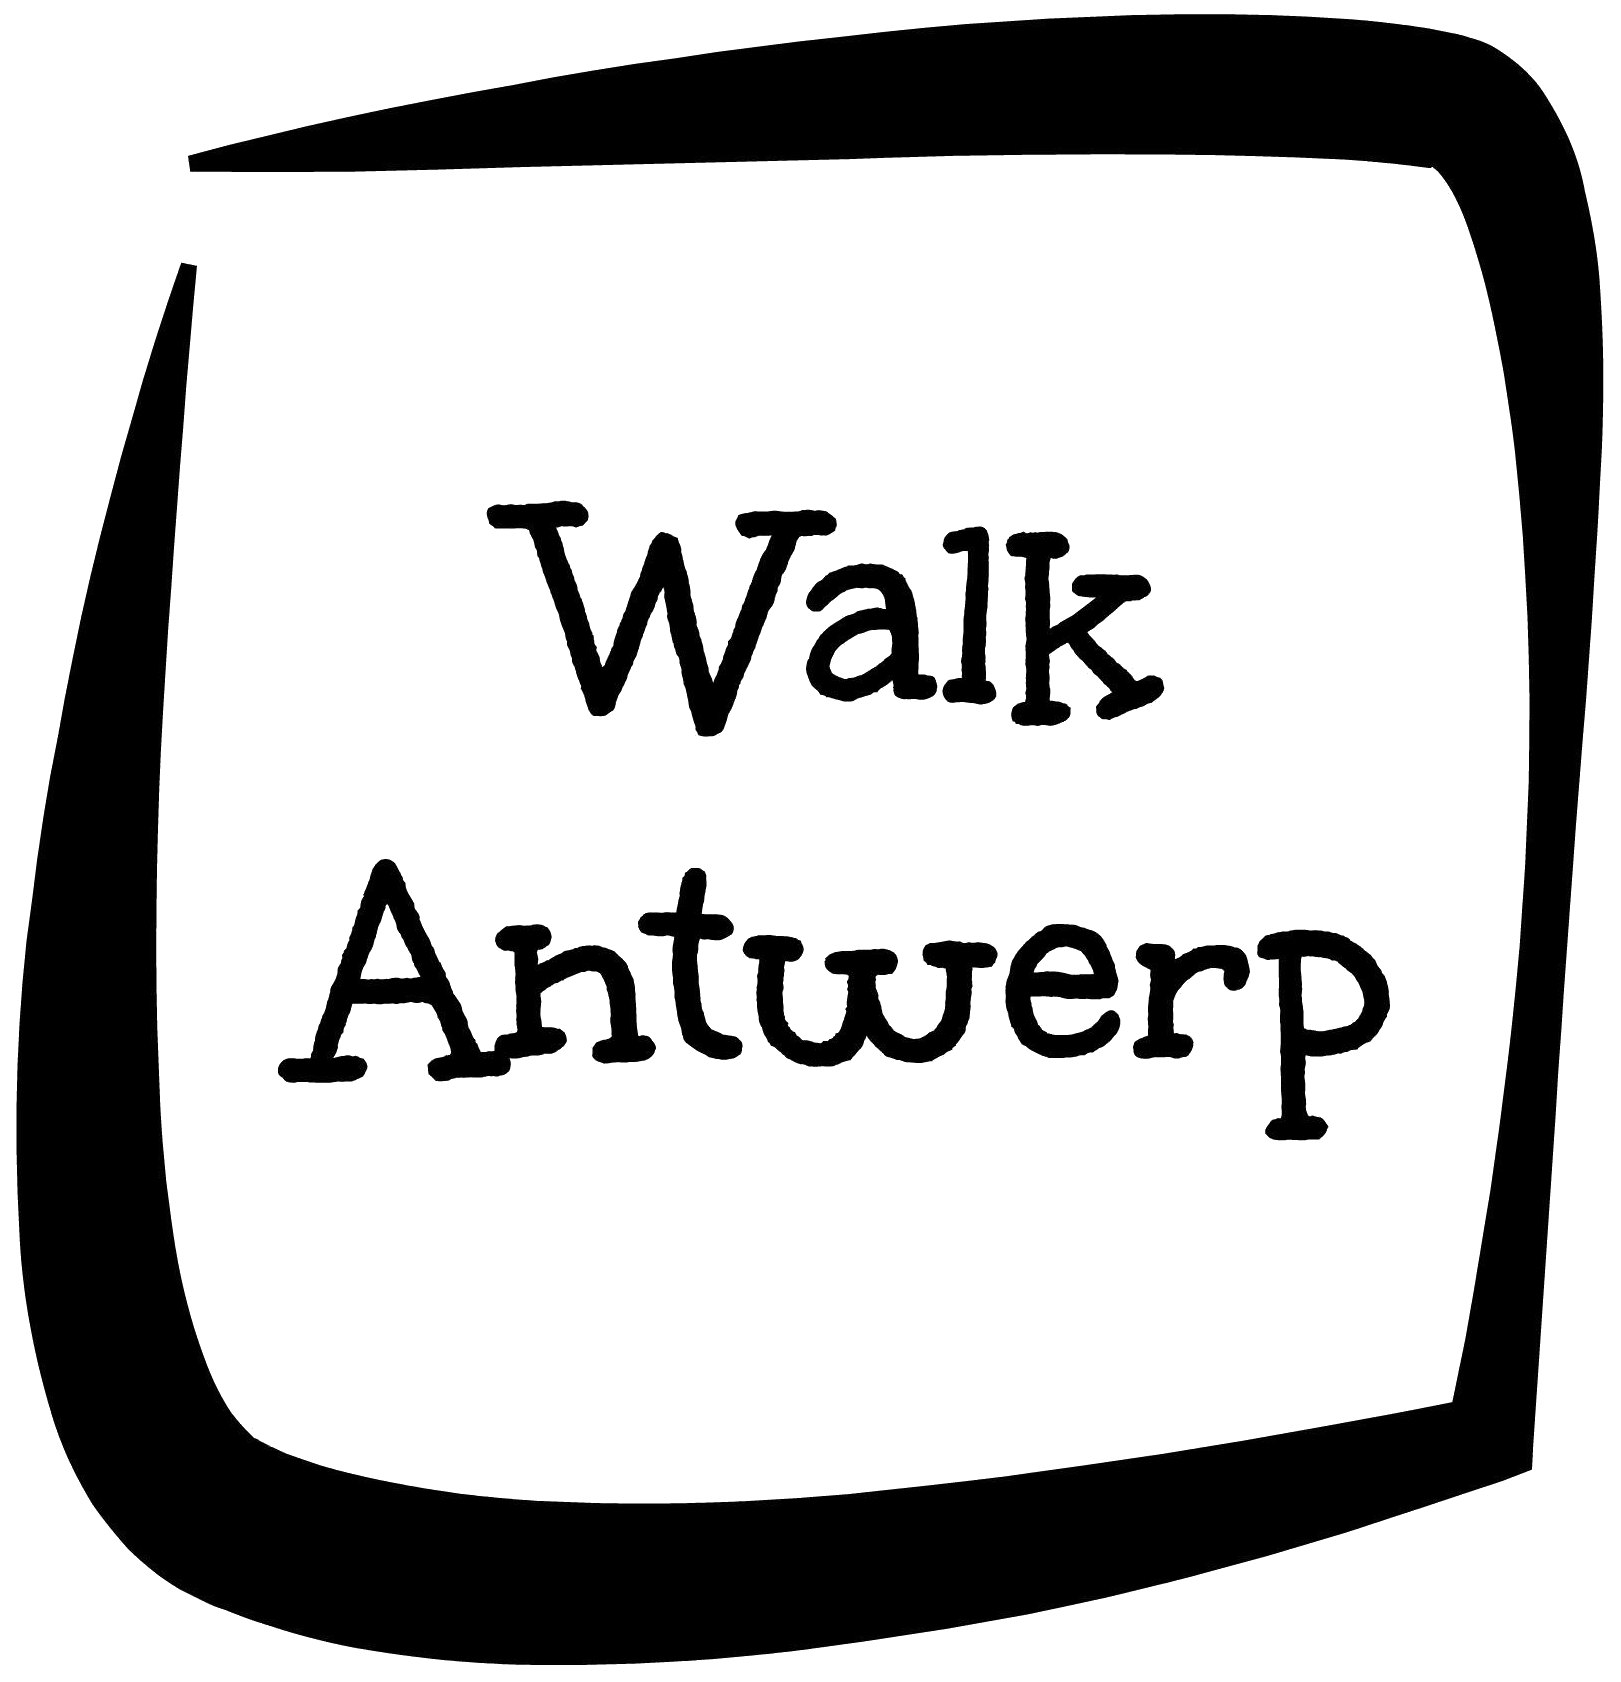 Walk Antwerp